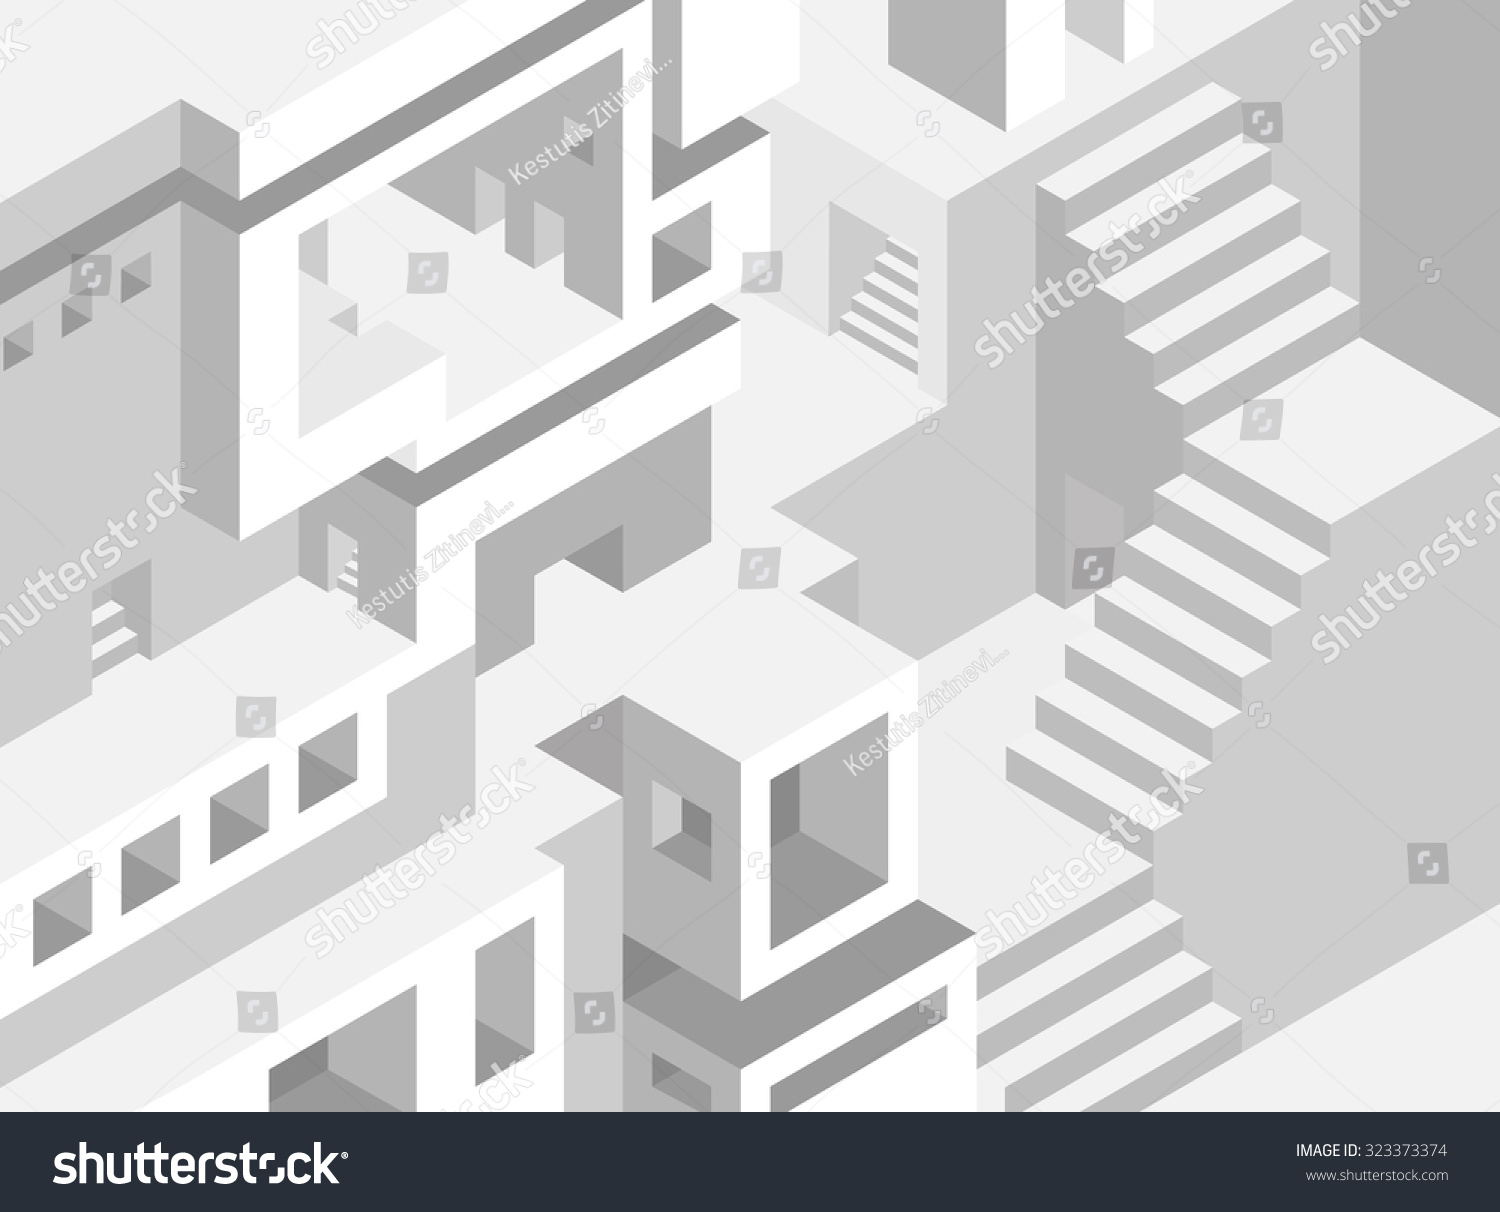 Stairs Model For Sweet Home 3d